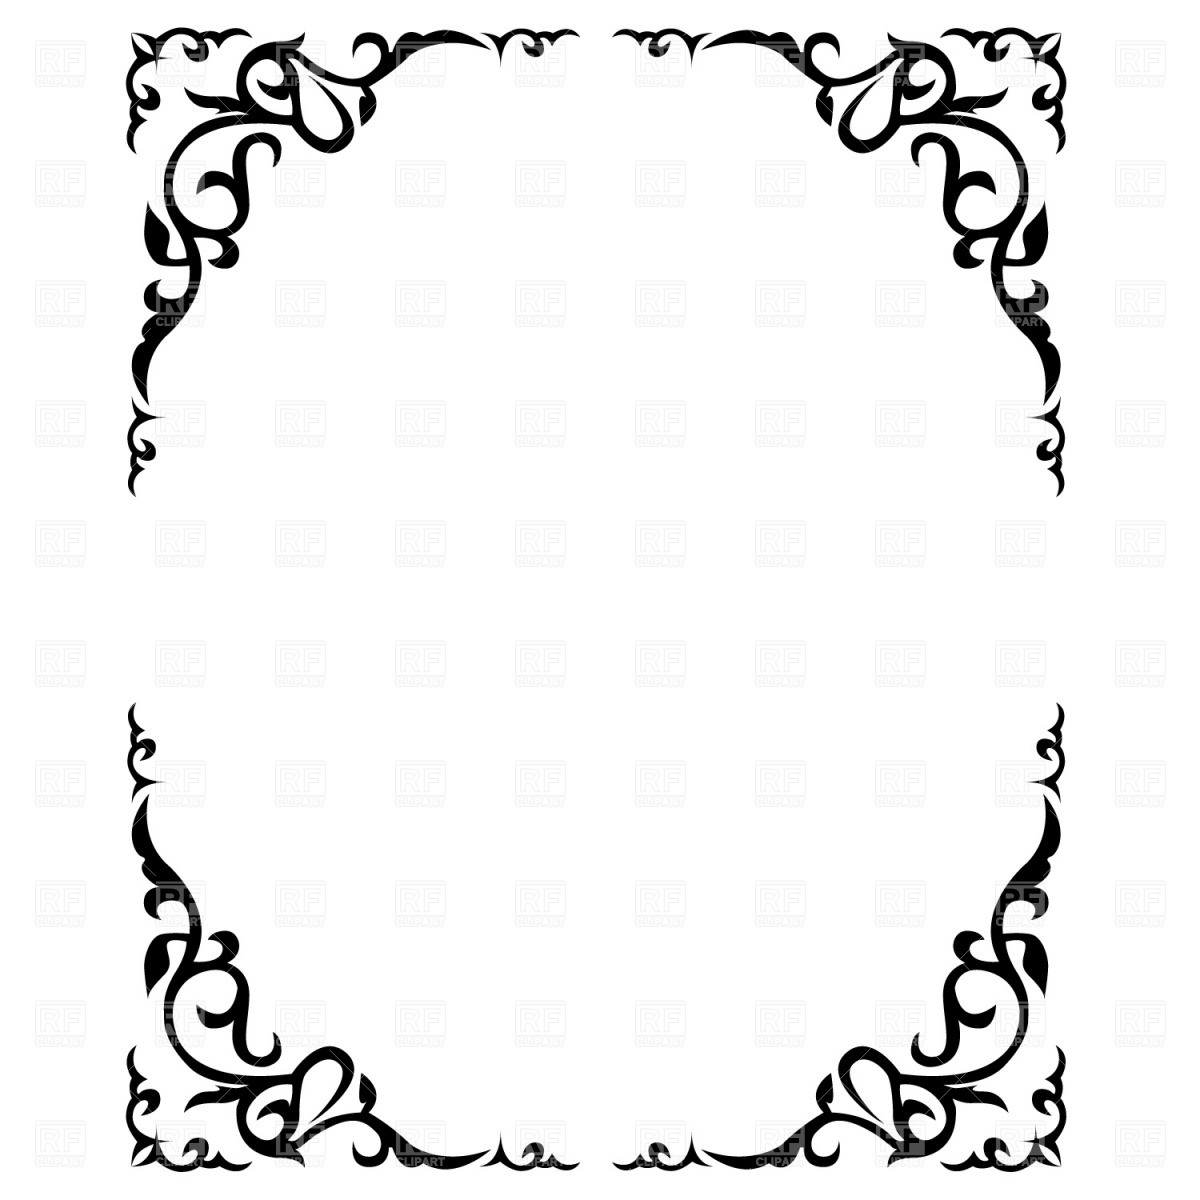 free clipart ornate frames - photo #14